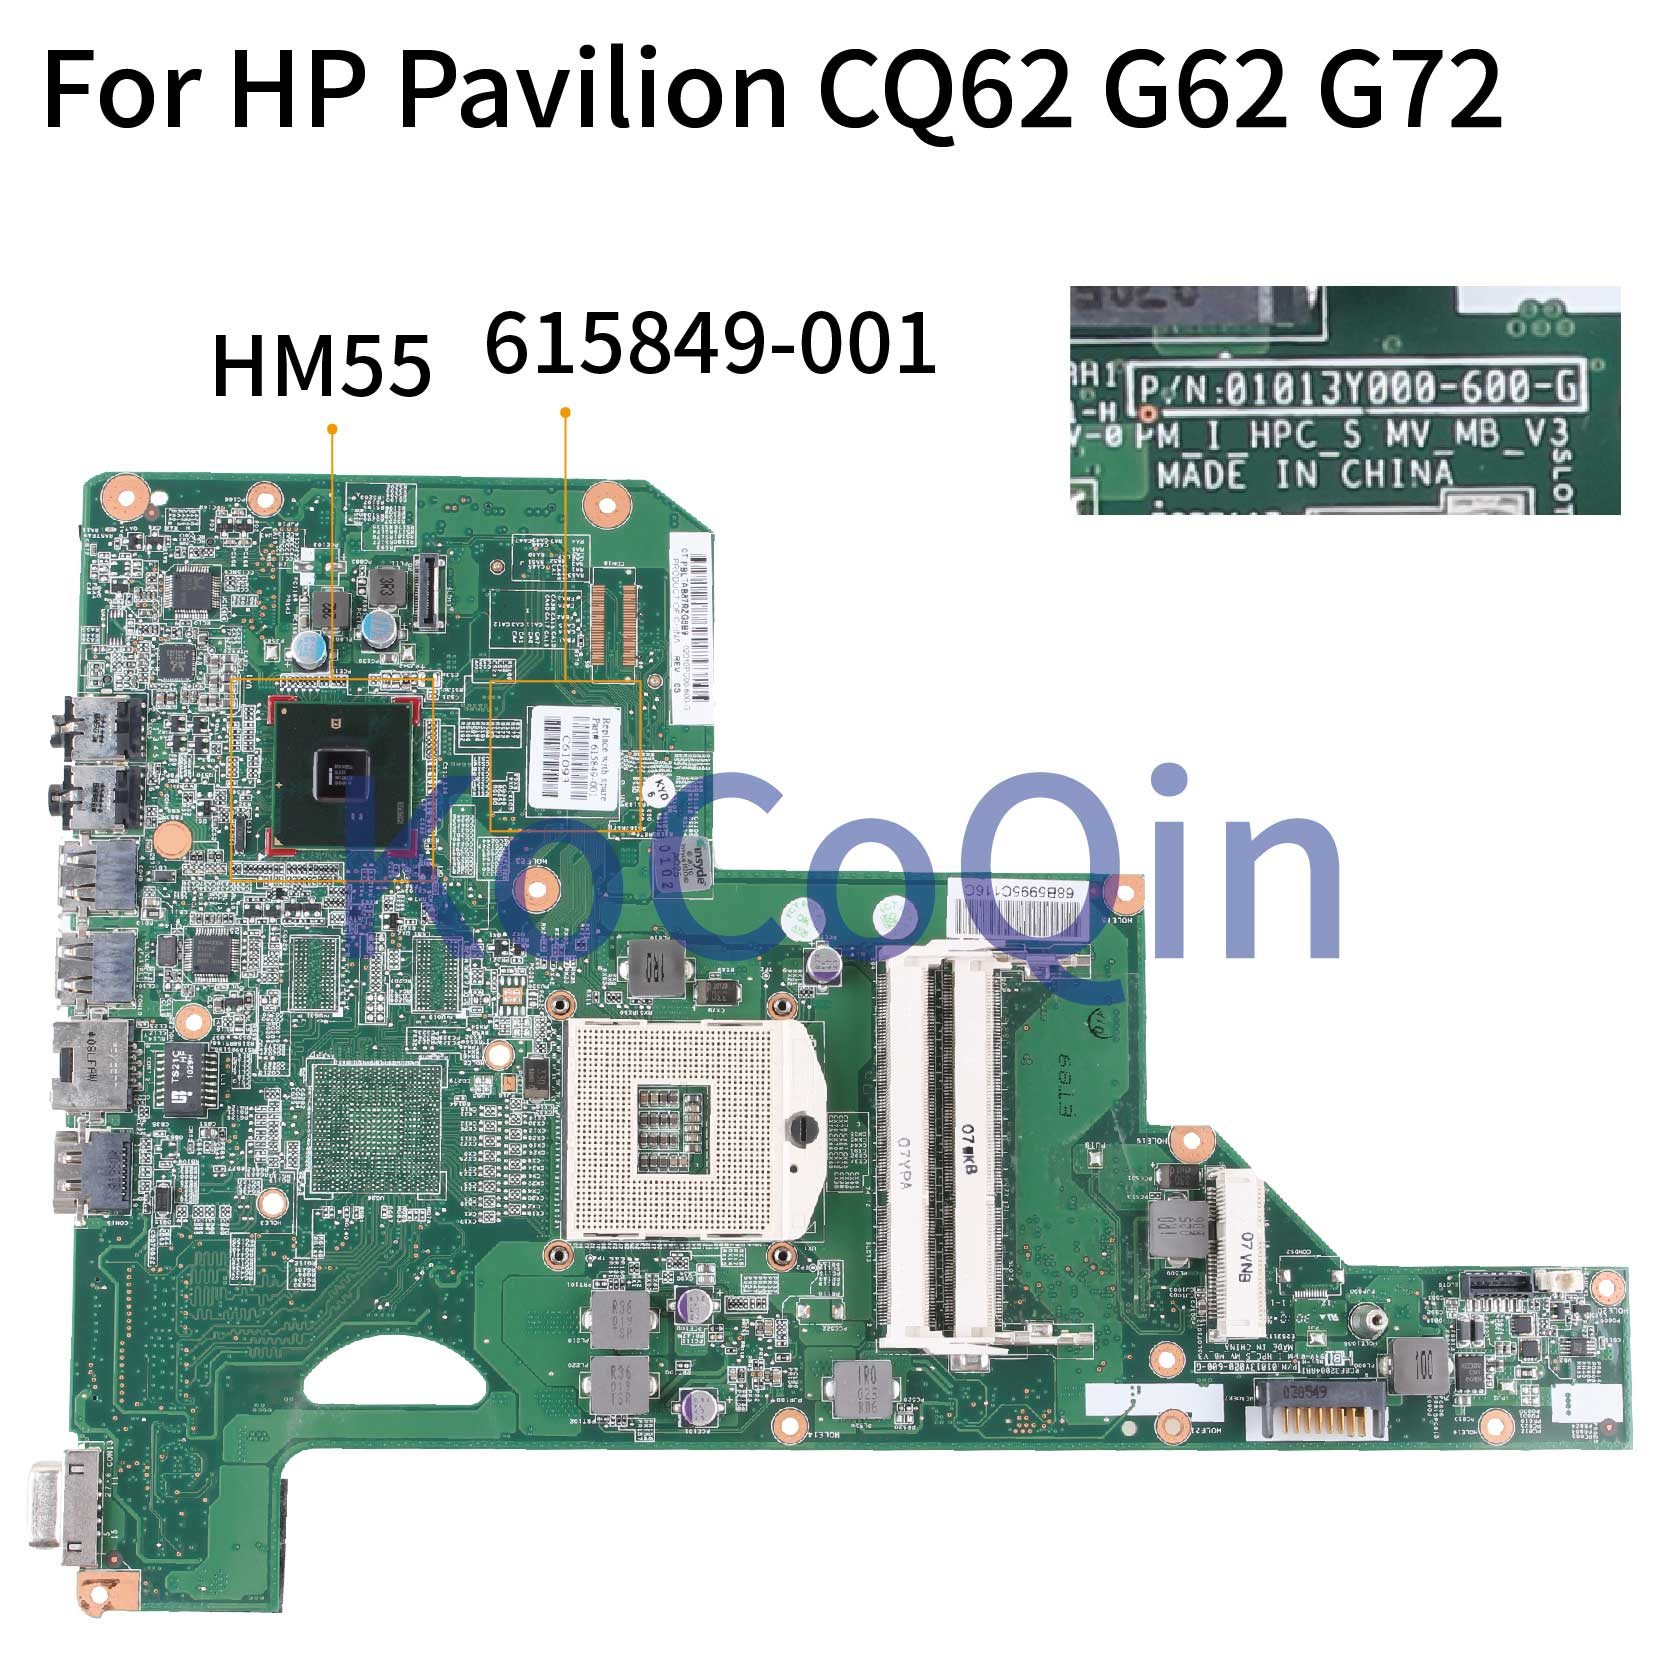 KoCoQin Laptop Motherboard For HP Pavilion CQ62 G62 G72 01013Y000-600-G 615849-001 615849-501 HM55 Mainboard